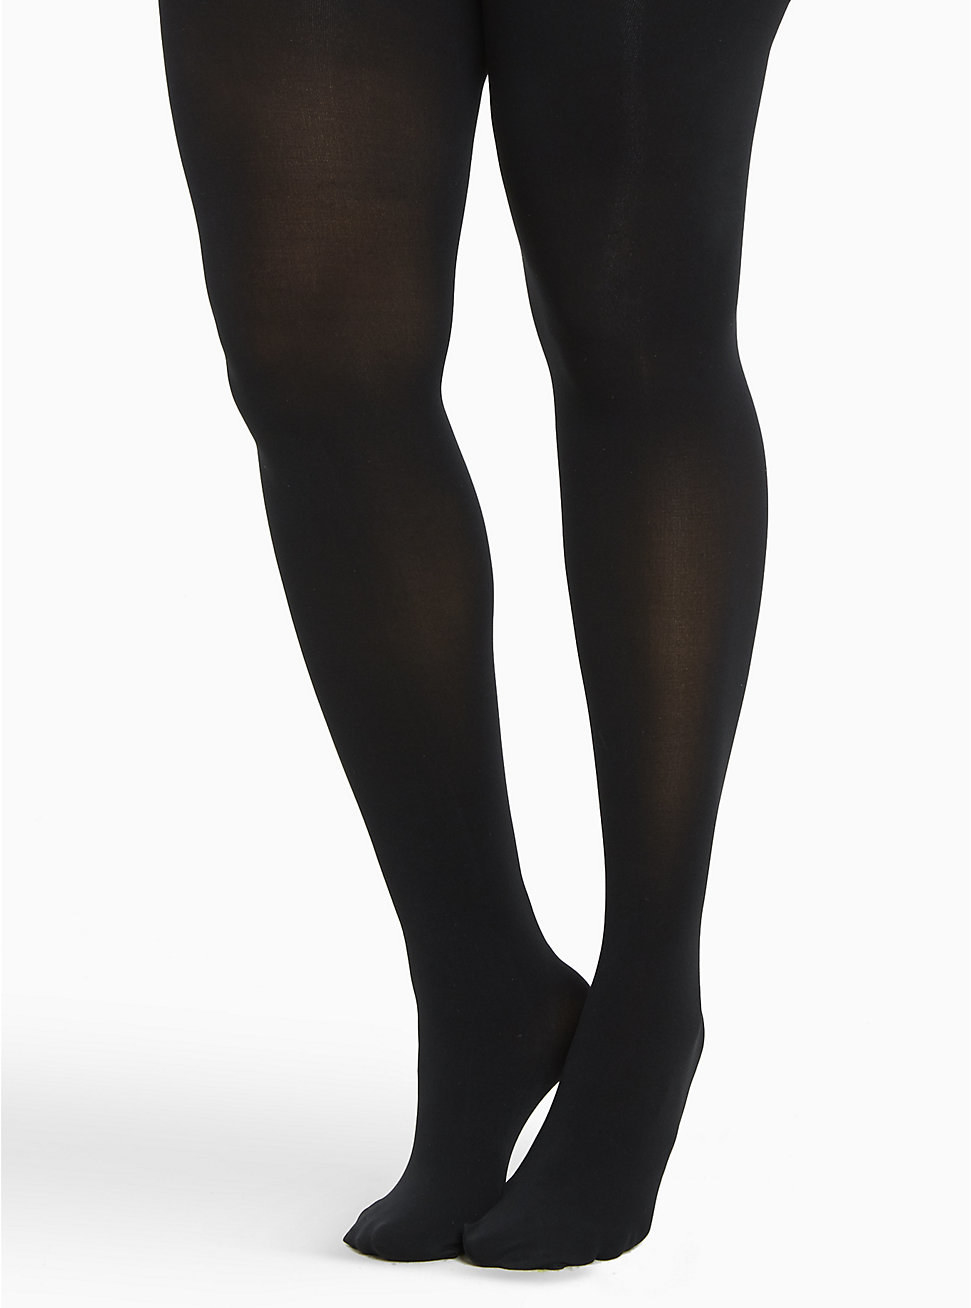 a model wearing the black tights